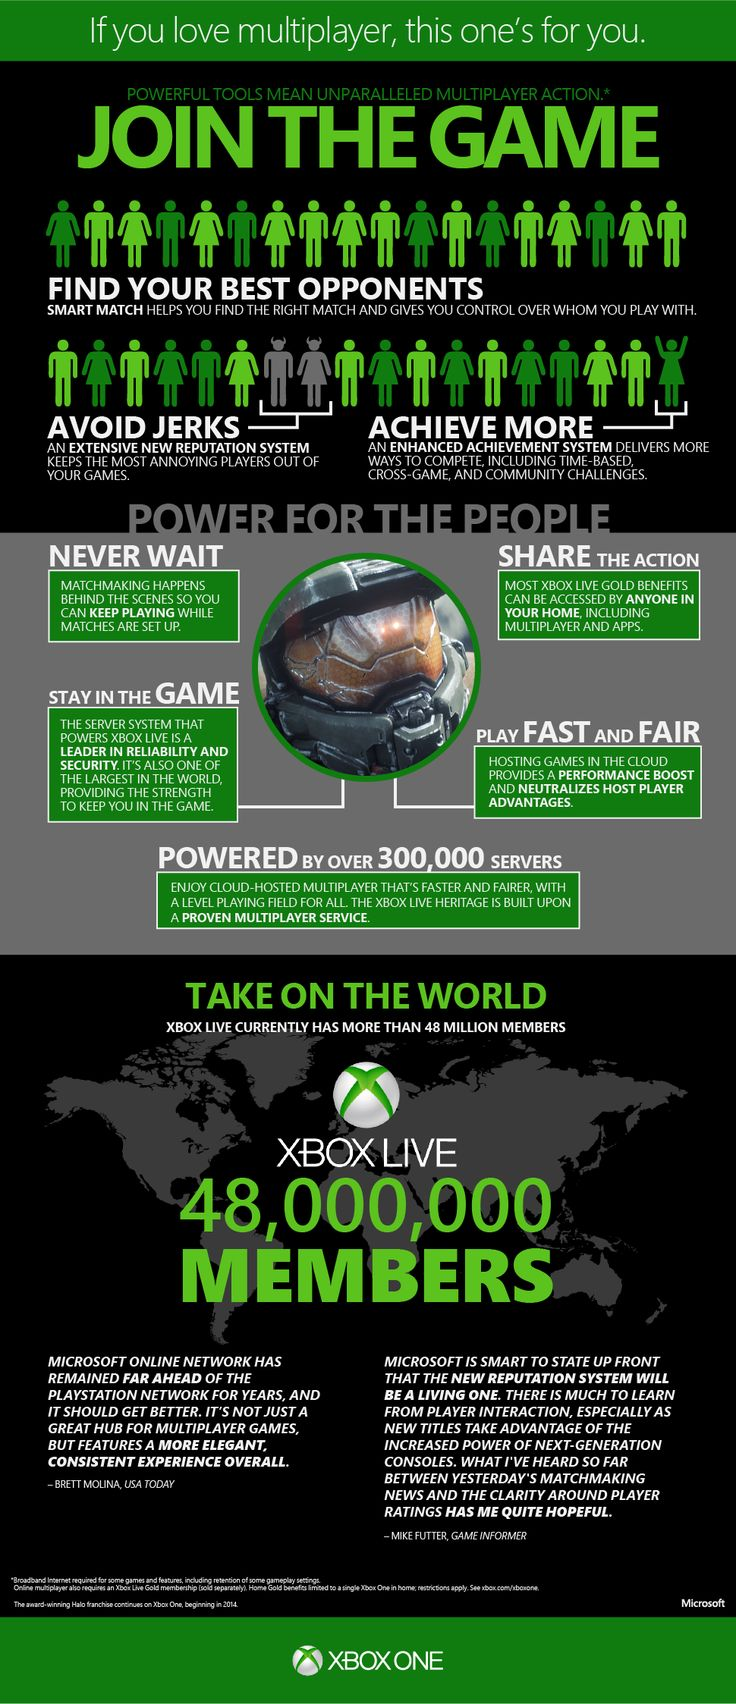 300k servers, shared Gold, and a better-than-ever matchmaking system.  Who else is ready to play some #XboxOne multiplayer?